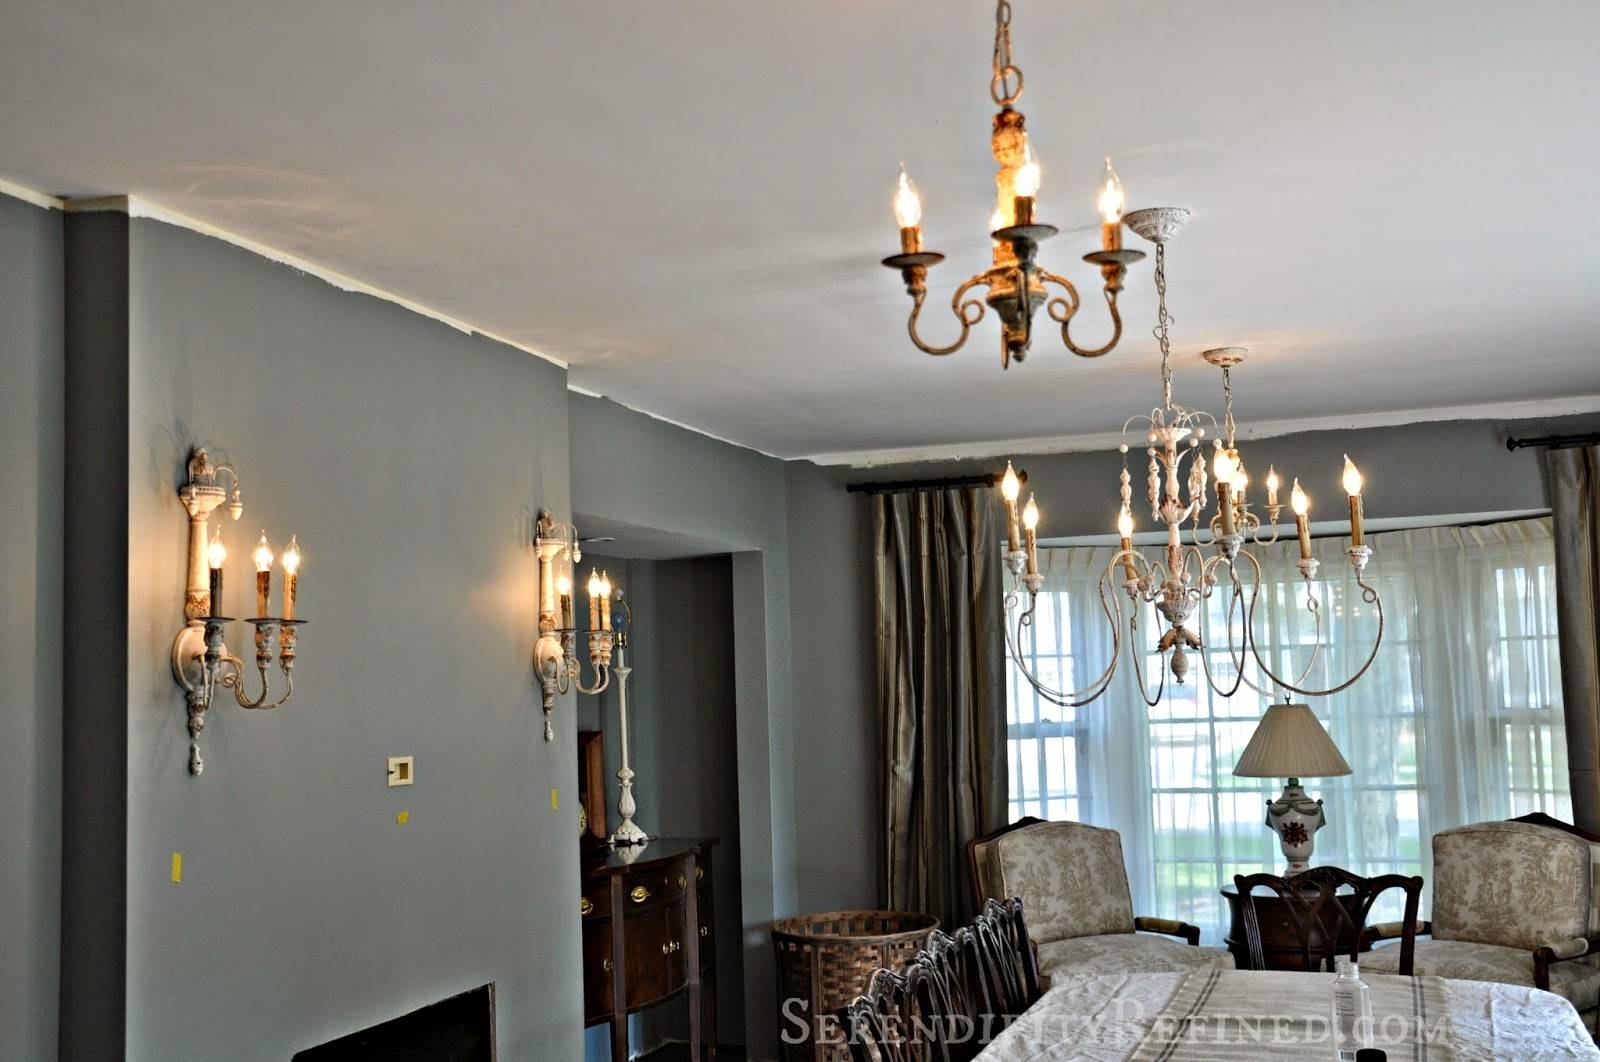 Serendipity Refined Blog: French Country Light Fixtures For The within French Style Lights (Image 14 of 15)